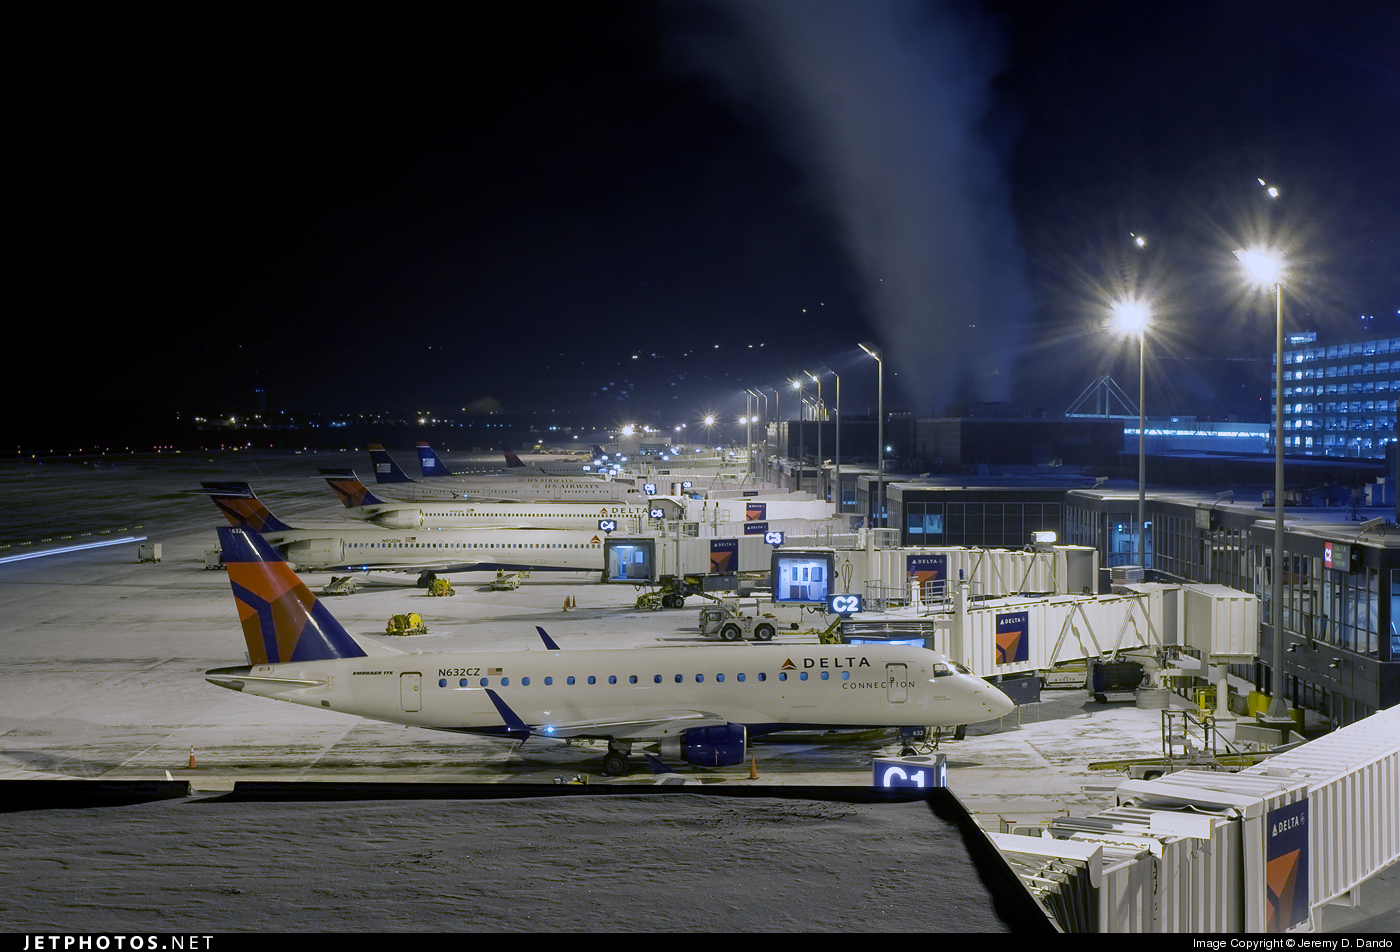 Photo of KMSP Airport by Jeremy D. Dando